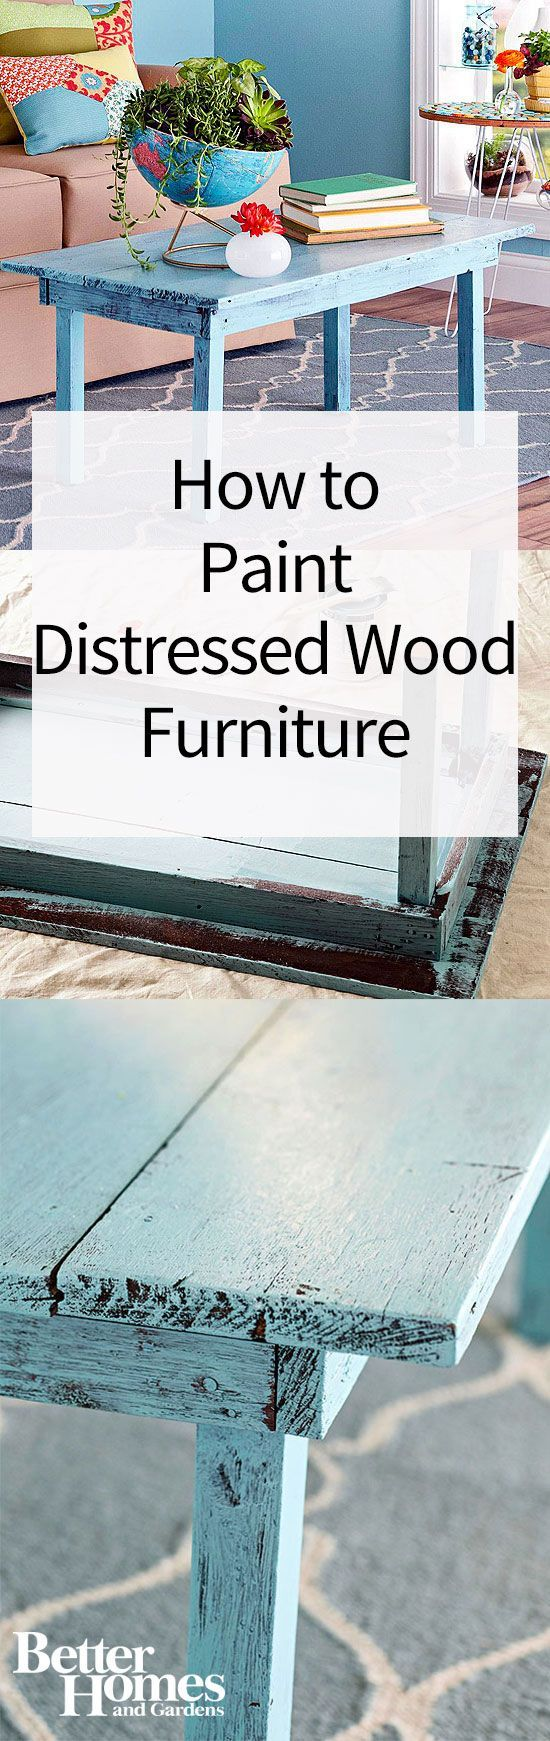 If you want to transform a piece of furniture to look like an old vintage treasure, find out how to paint distressed wood furniture! This step-by-step DIY tutorial explains how to give your end table, coffee table, or any other piece of wood furniture a brand new look. Check out these incredible before-and-after photos, and then try out this amazing makeover on your own items!